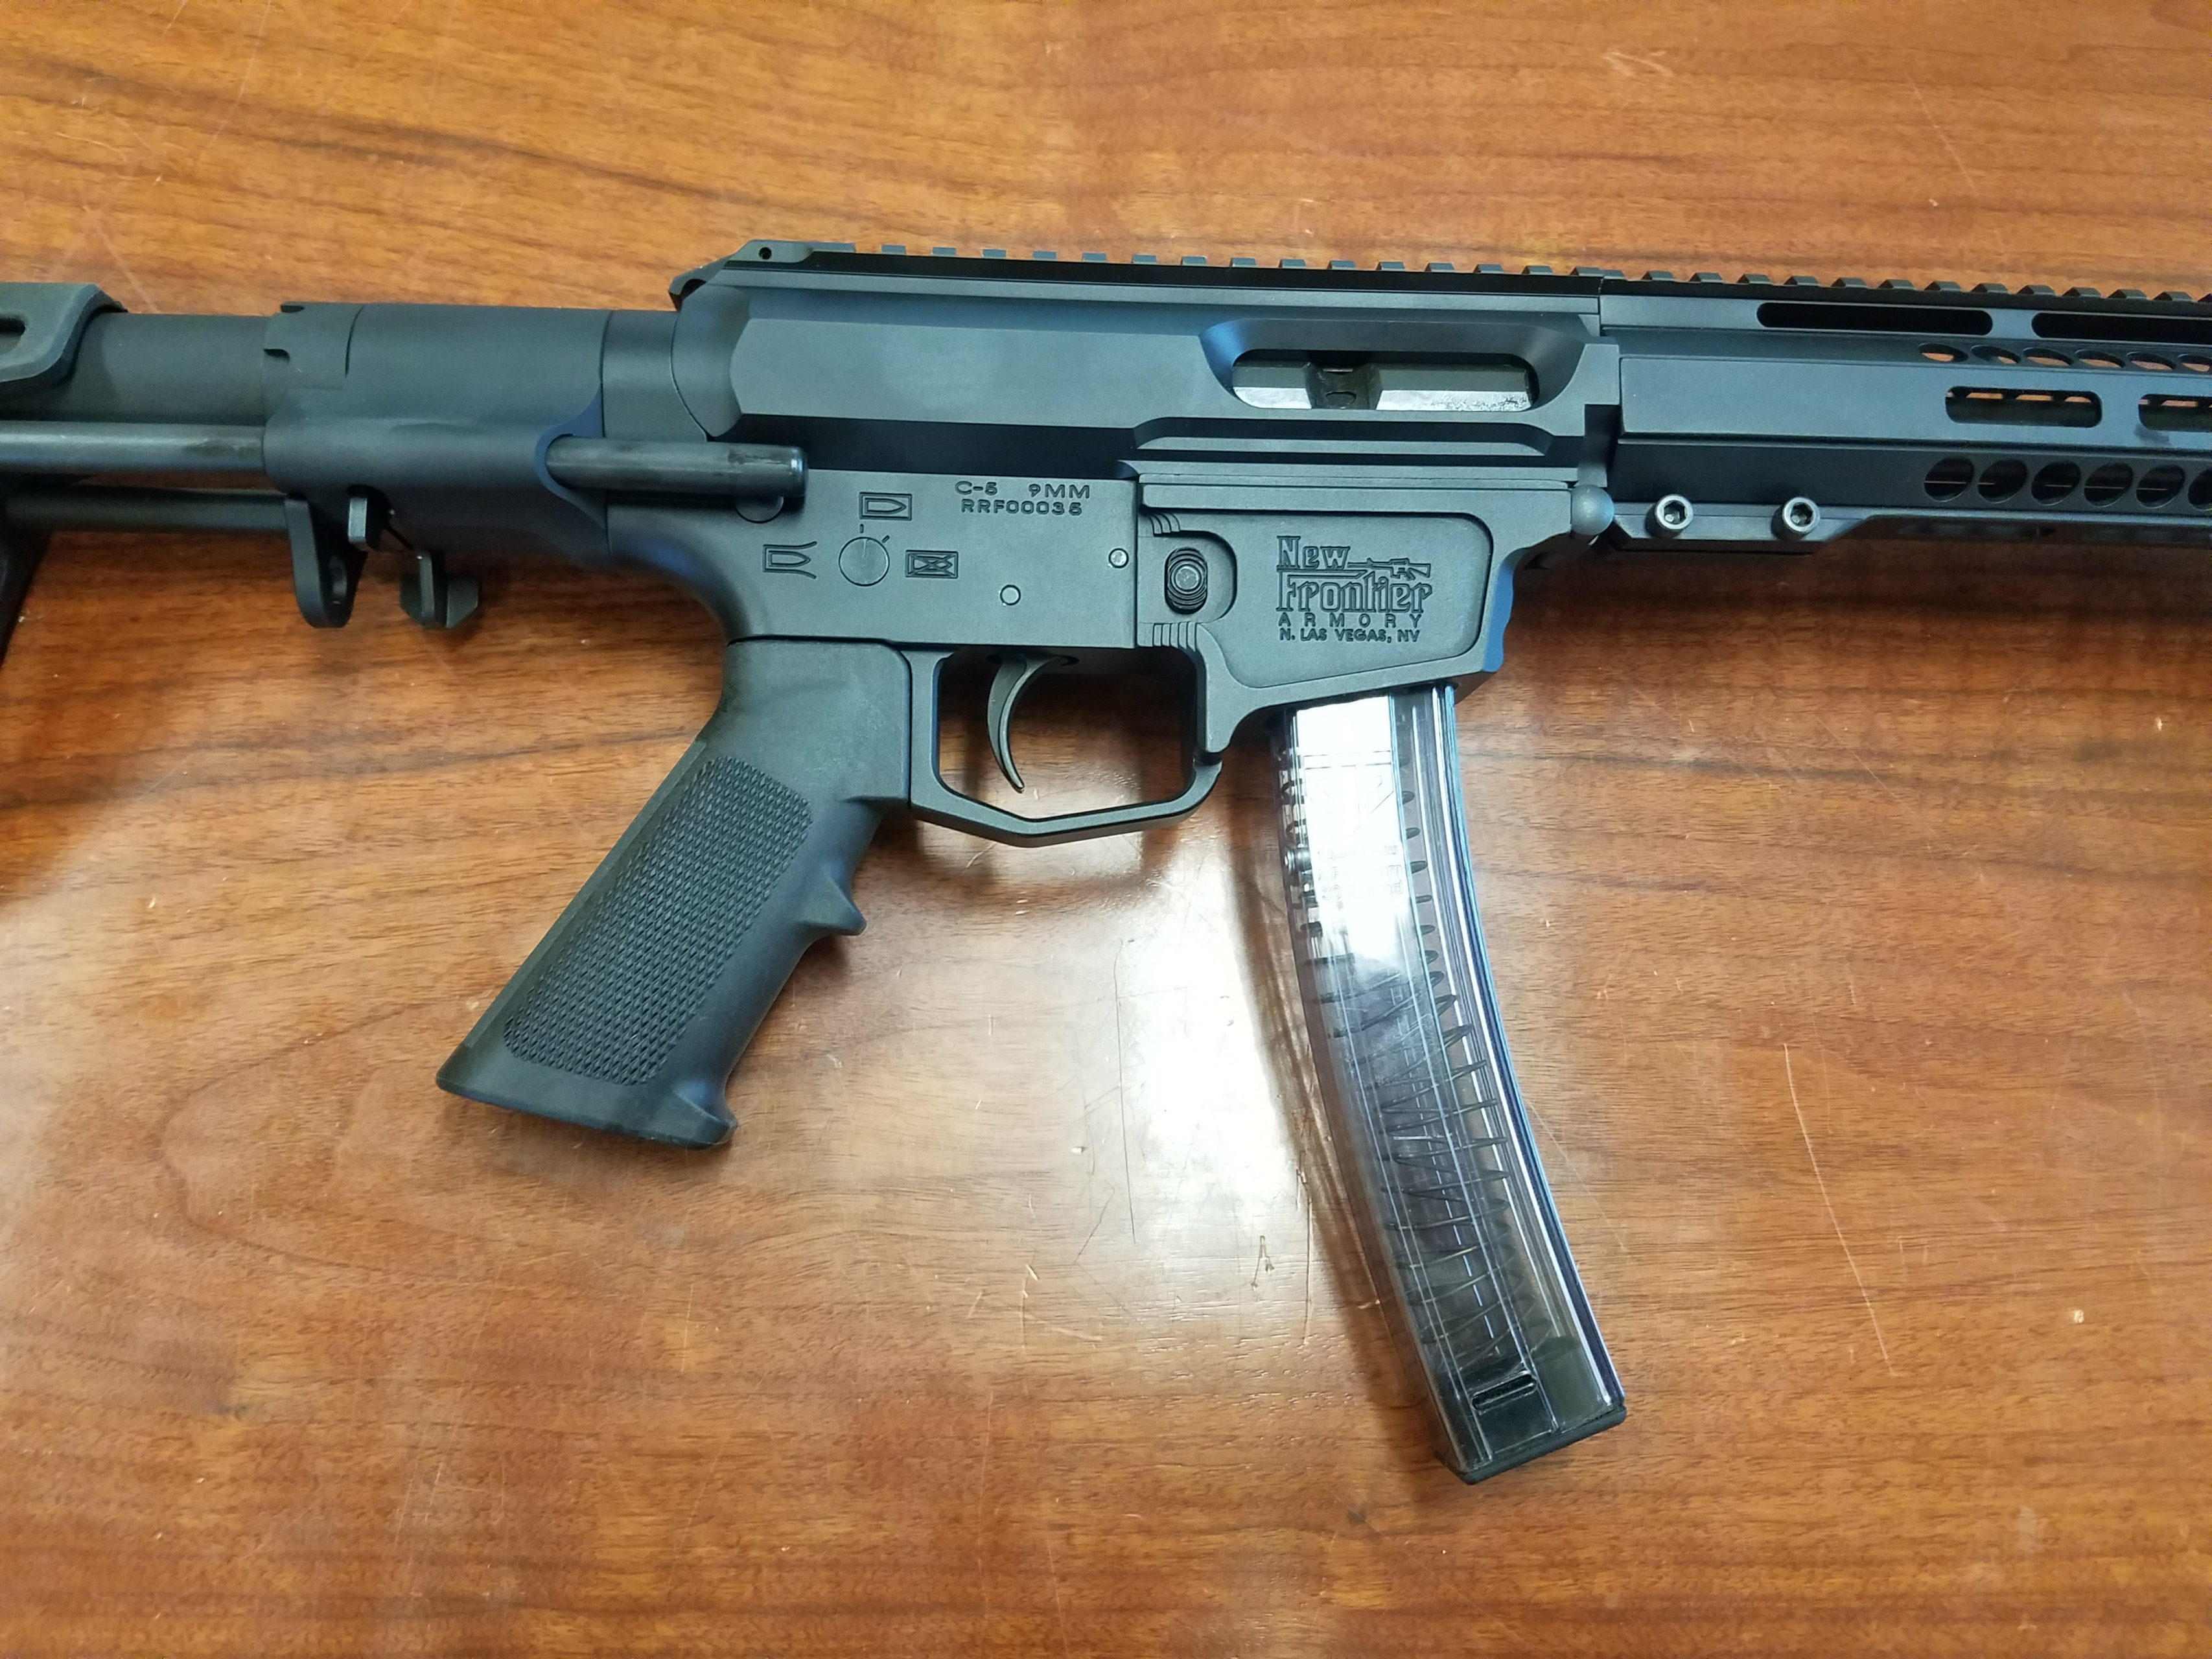 CT Other AR-MP5 hybrid 9mm by New Frontier Armory - New